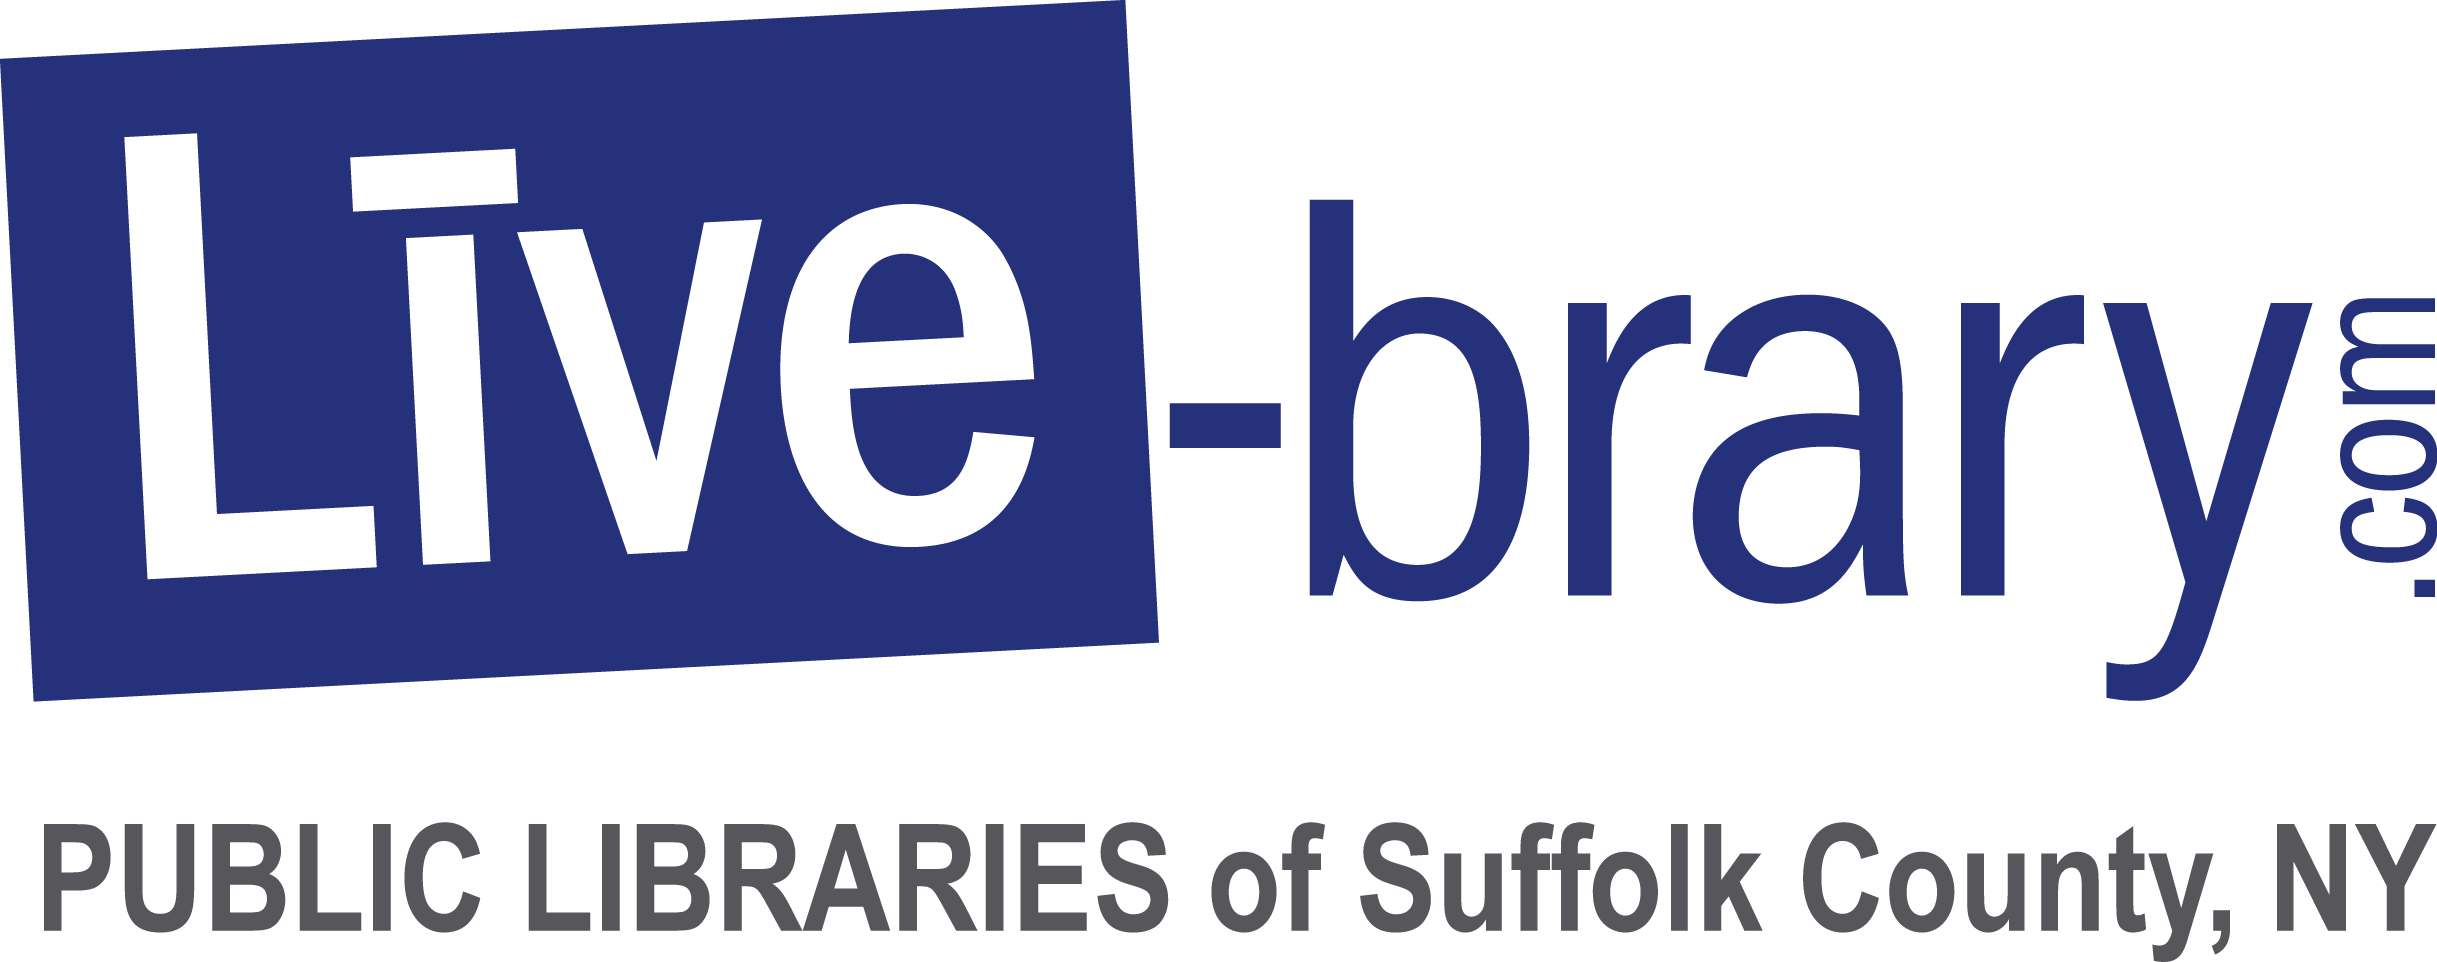 Online Catalog for the Public Libraries of Suffolk County, NY